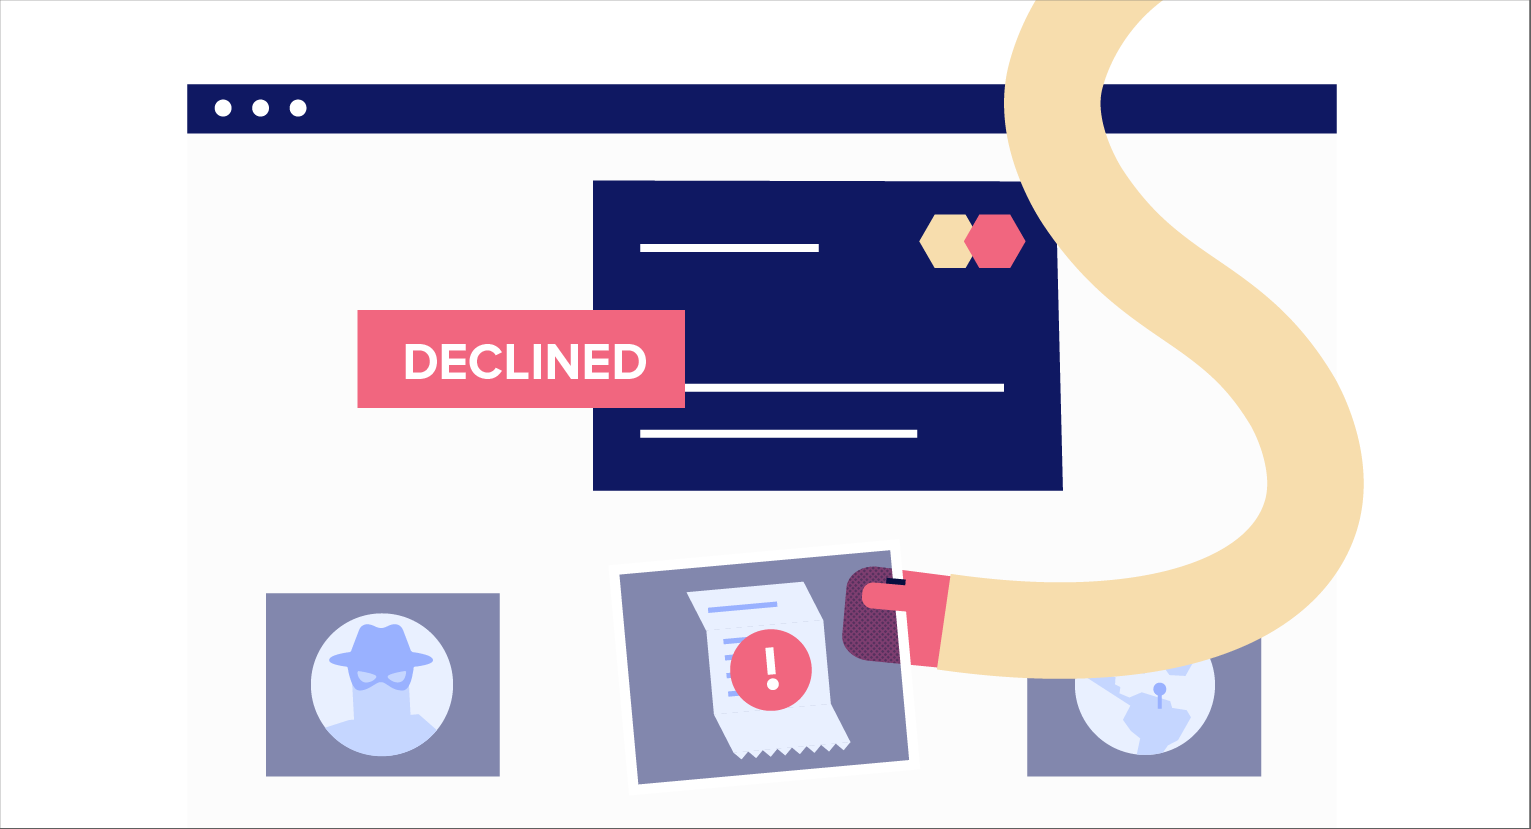 The Merchant's Guide to Payment Decline Decisions